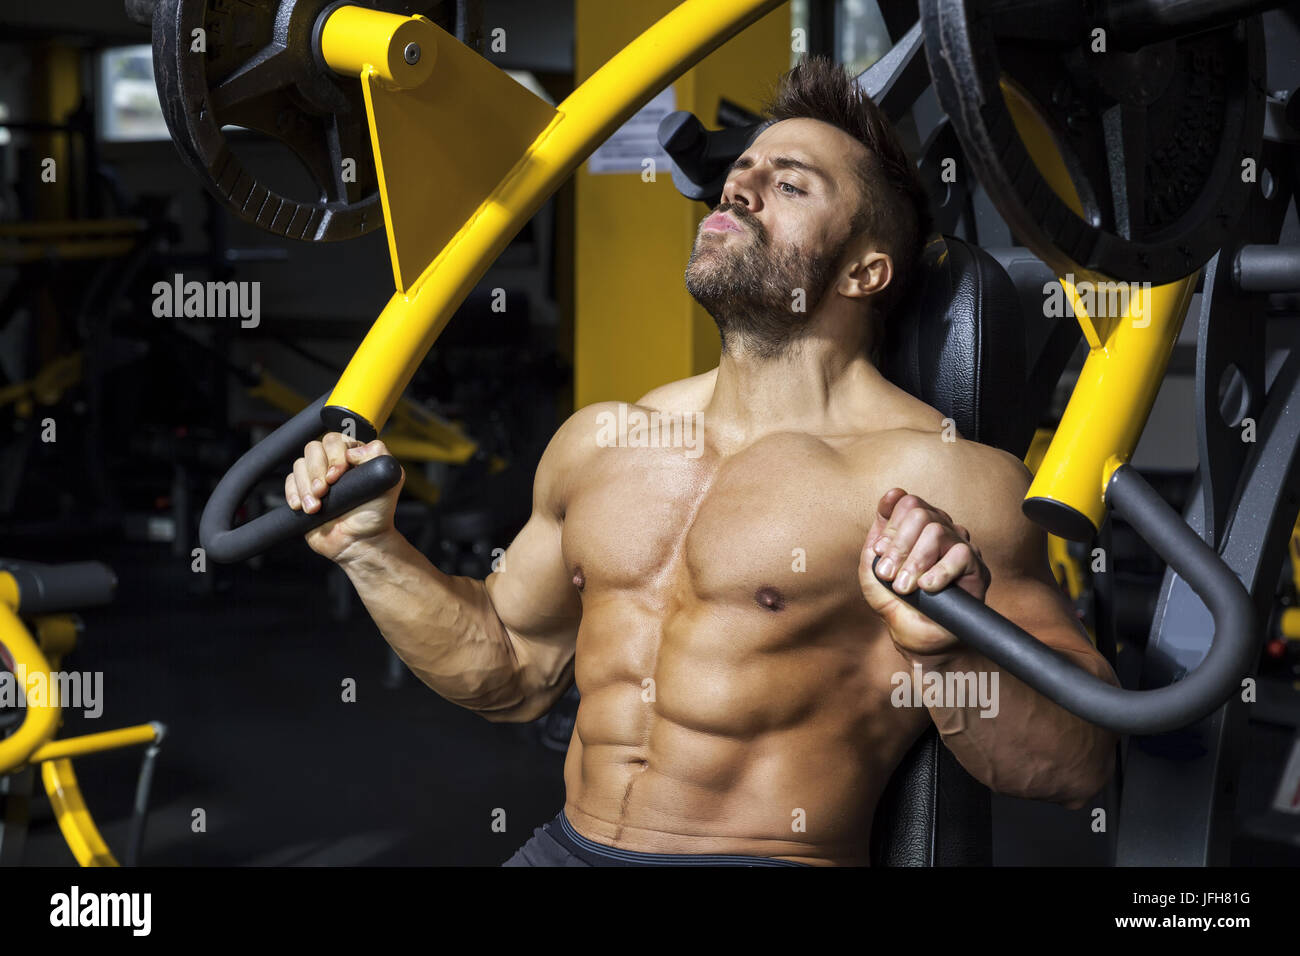 Handsome man bodybuilding barbu Photo Stock